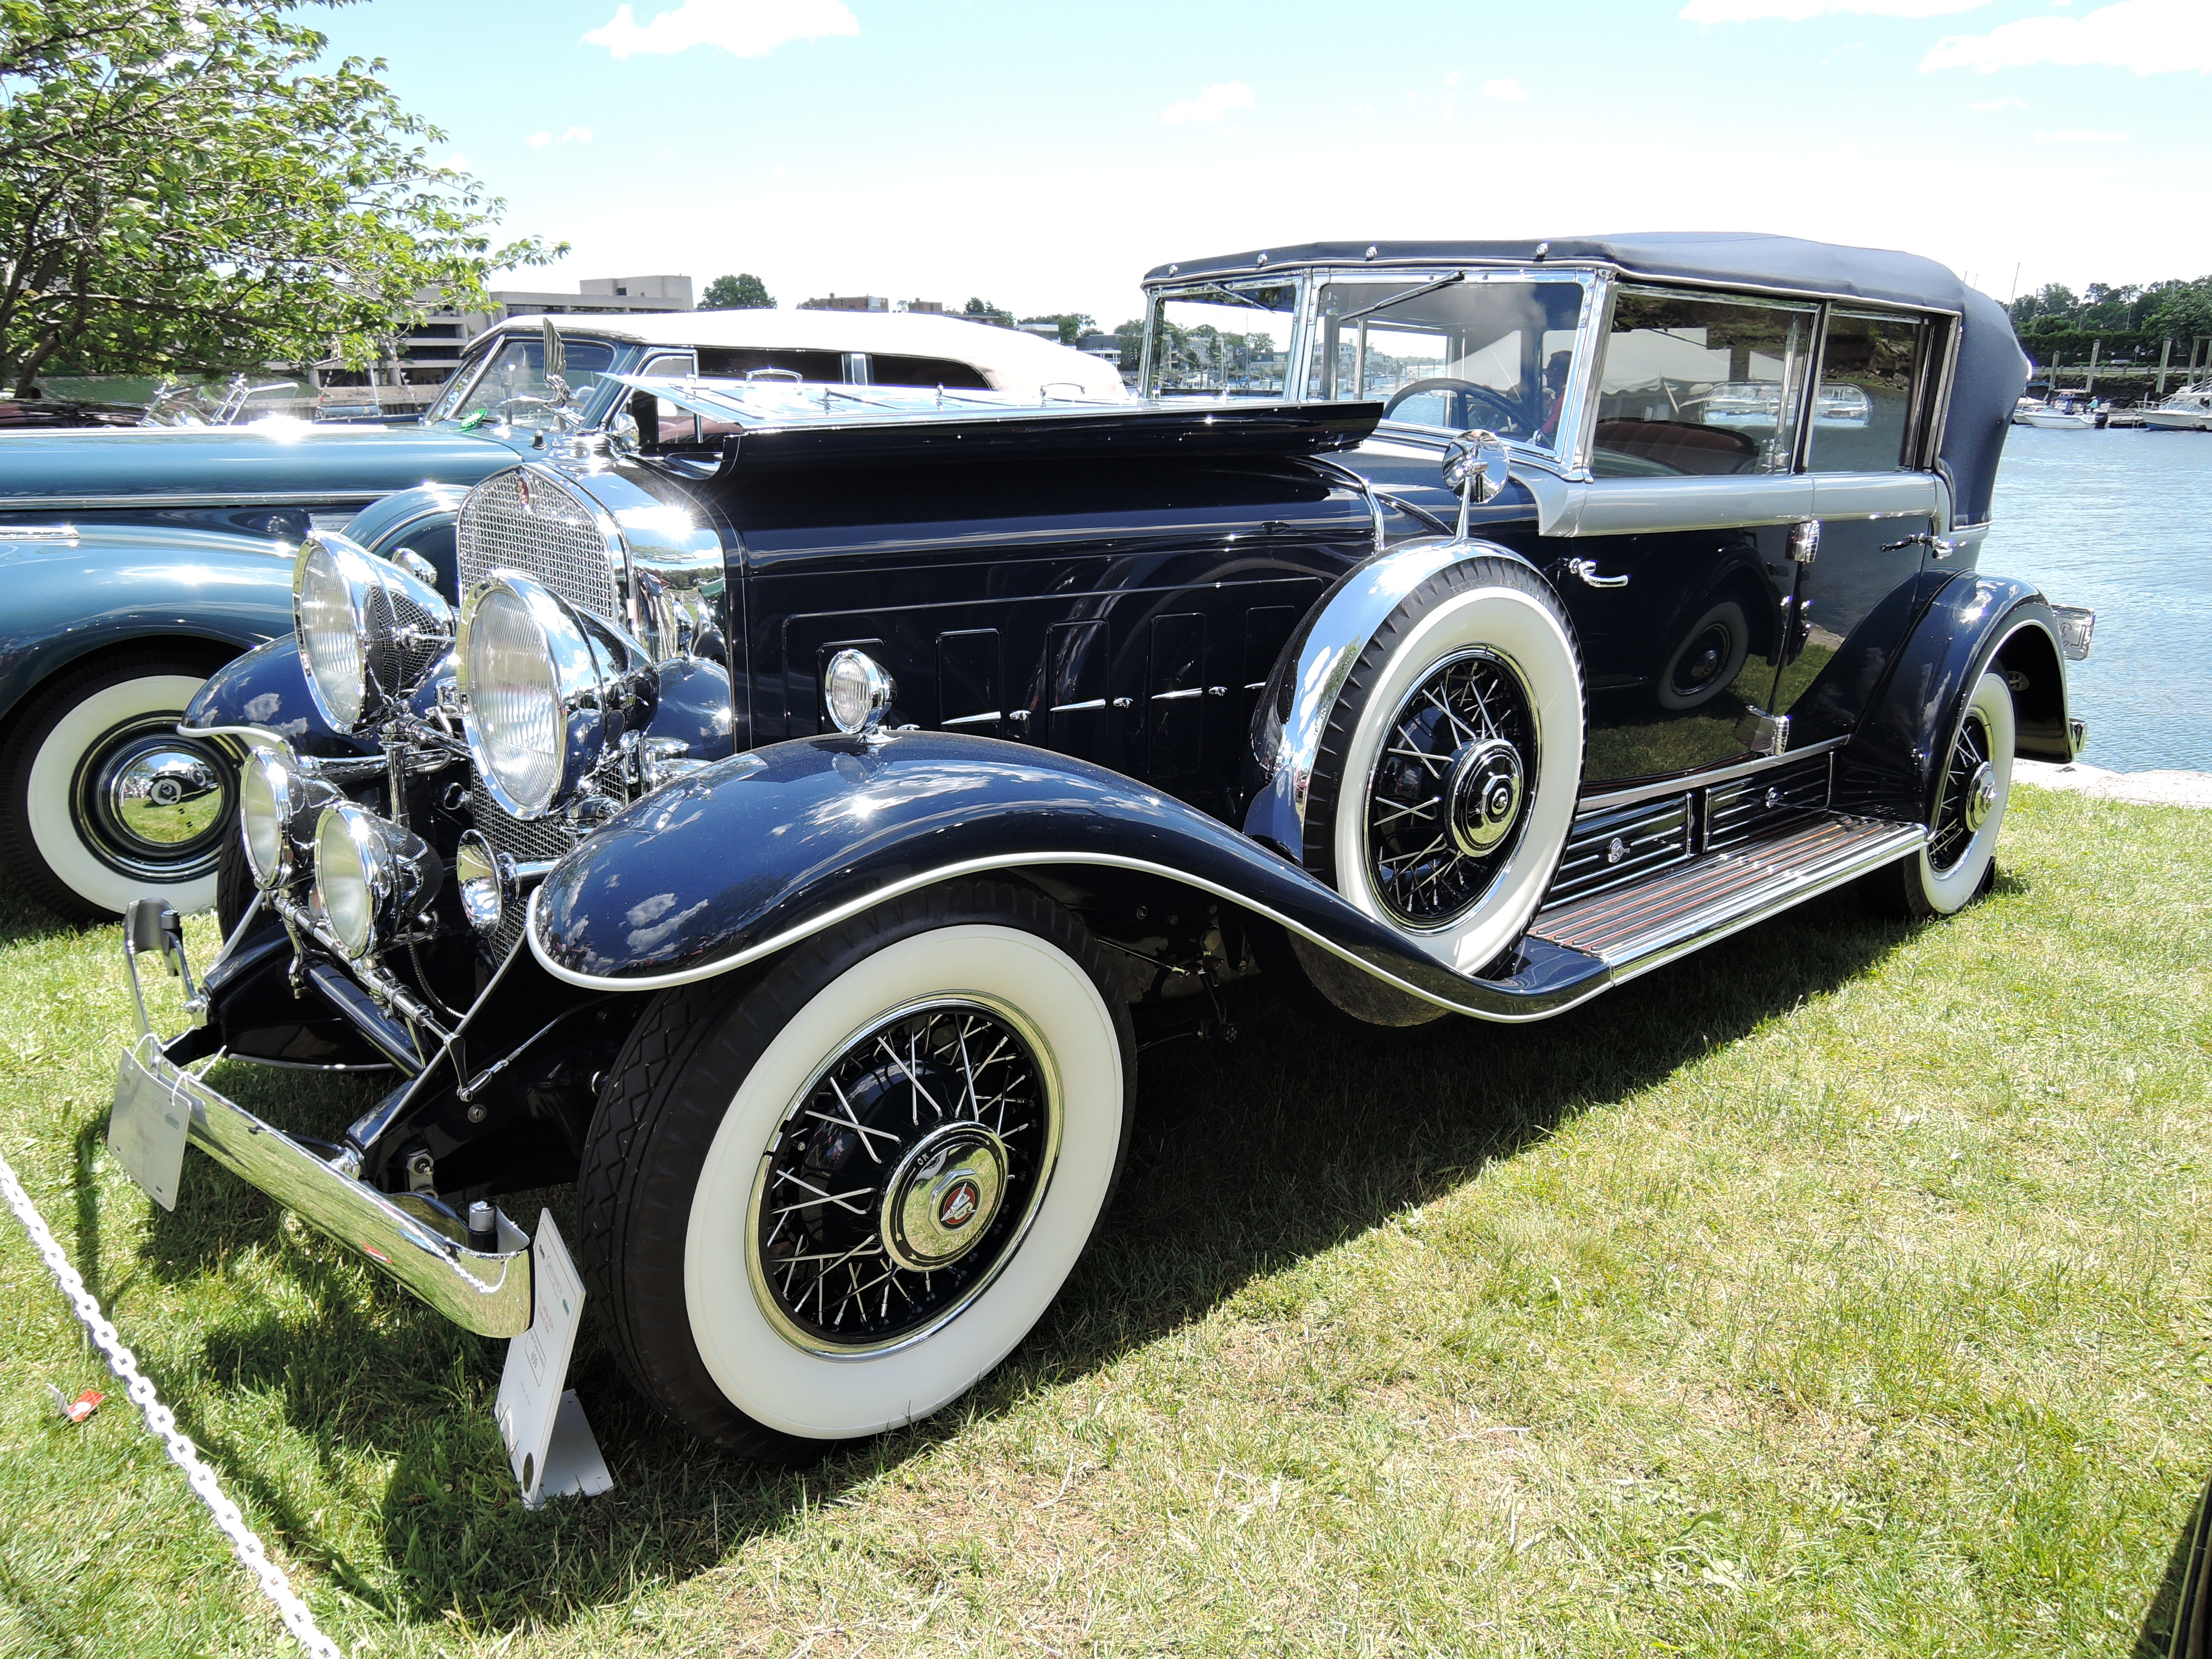 blue 1931 Cadillac 452A All-Weather Phaeton - Greenwich Concours d'Elegance 2017